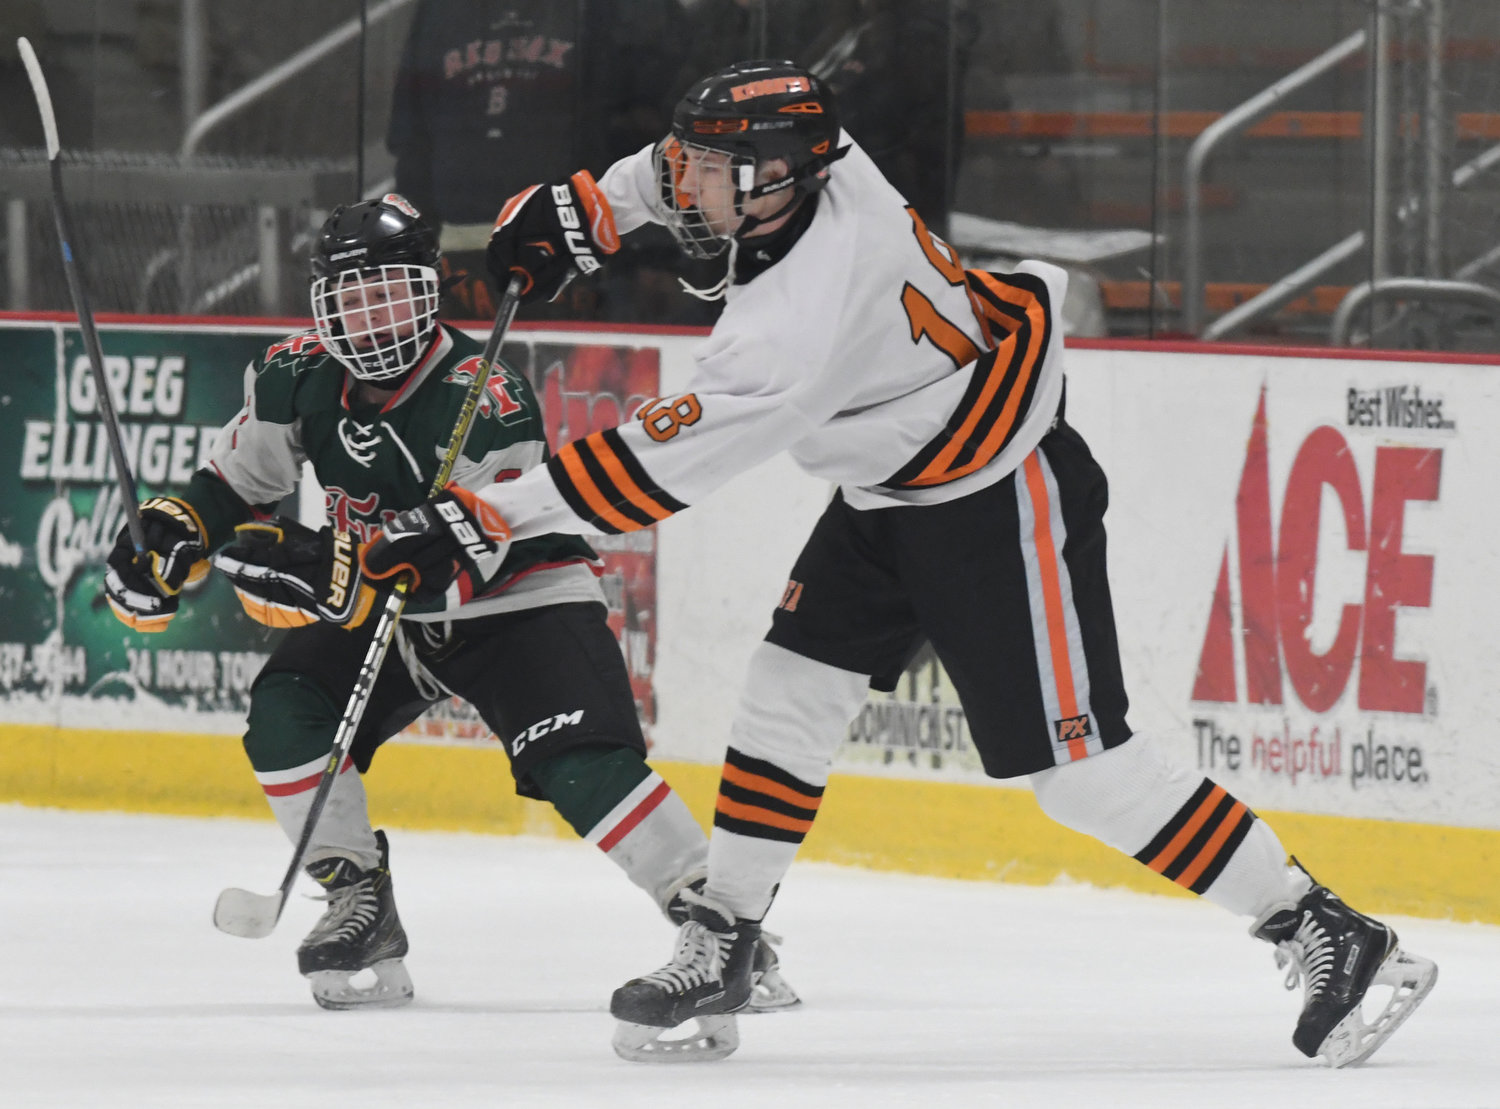 Black Knights Shake Off Penalties In Pushing Their Hockey Home Mark To 9 0 Rome Daily Sentinel Jayden lee is on mixcloud. black knights shake off penalties in pushing their hockey home mark to 9 0 rome daily sentinel